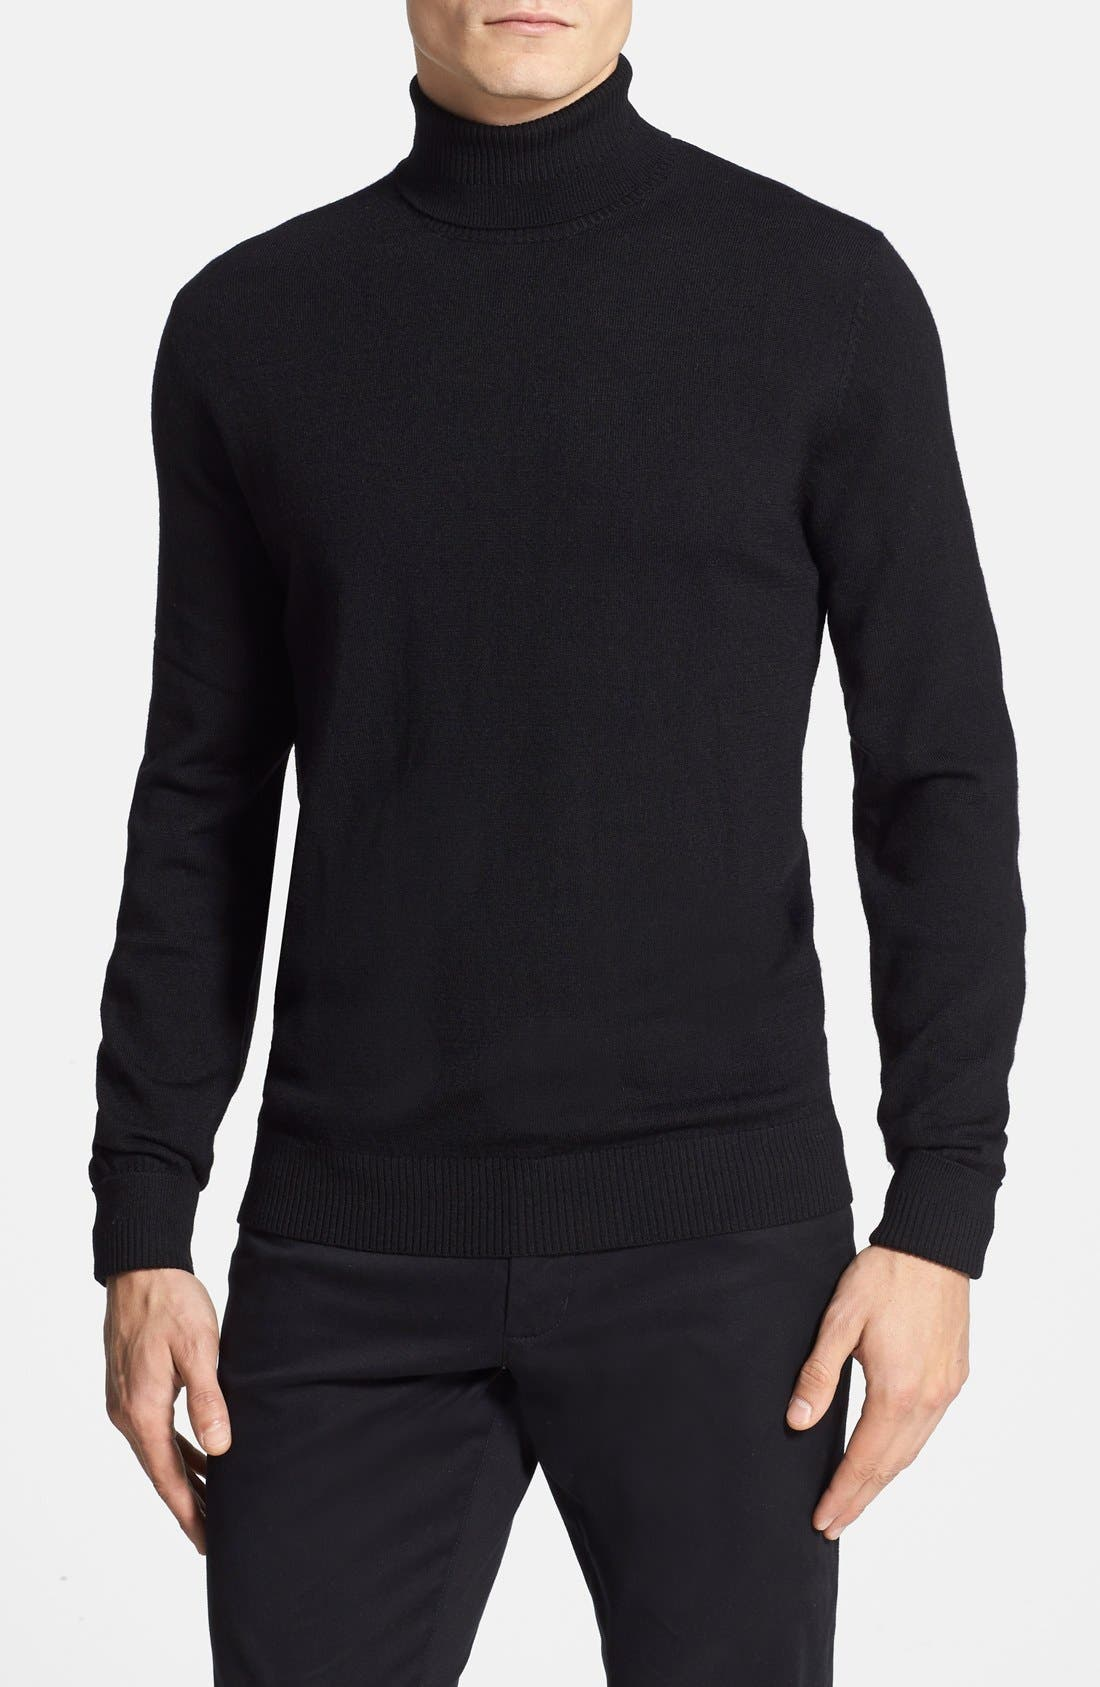 Vince Camuto Merino Wool Turtleneck, Black